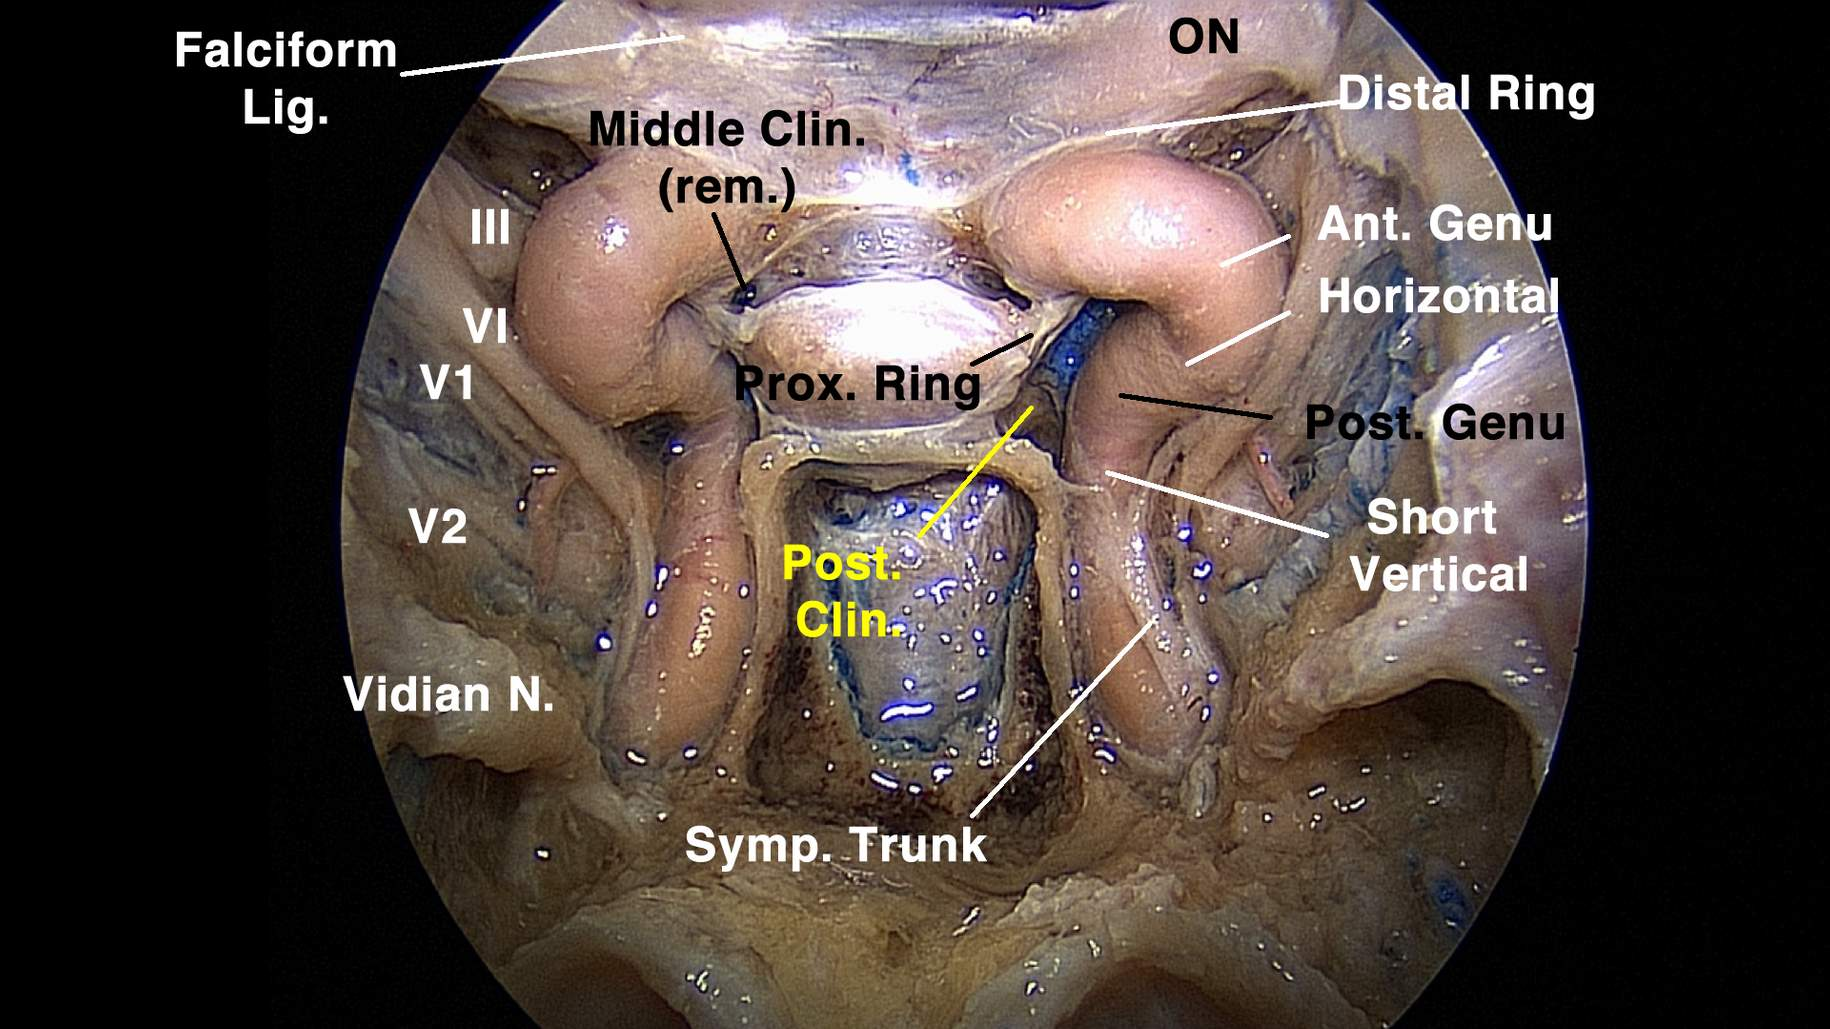 Figure 4: In this preparation, the periosteal layer was removed to expose the entirety of the cavernous sinus contents. Opening of the left medial wall of the cavernous sinus reveals the medial aspect of the parasellar ICA (Short vertical/Post. Genu — the hidden segment; Horizontal — inferior horizontal segment; Ant. Genu — anterior genu or anterior vertical segment). The pituitary gland is connected to the anterior bend of the parasellar ICA by an arachnoid band (Prox. Ring — proximal dural ring). Note that the vidian nerve (Vidian N.) comprises an important landmark in the sphenoid sinus floor, providing guidance to the ICA transition from the foramen lacerum to the paraclival carotid artery. Falciform Lig. — falciform ligament; Middle Clin. (rem.) — middle clinoid process removed; ON — optic nerve; Post. Clin. — posterior clinoid process; Symp. Trunk — sympathetic trunk (image courtesy of Juan Fernandez-Miranda).